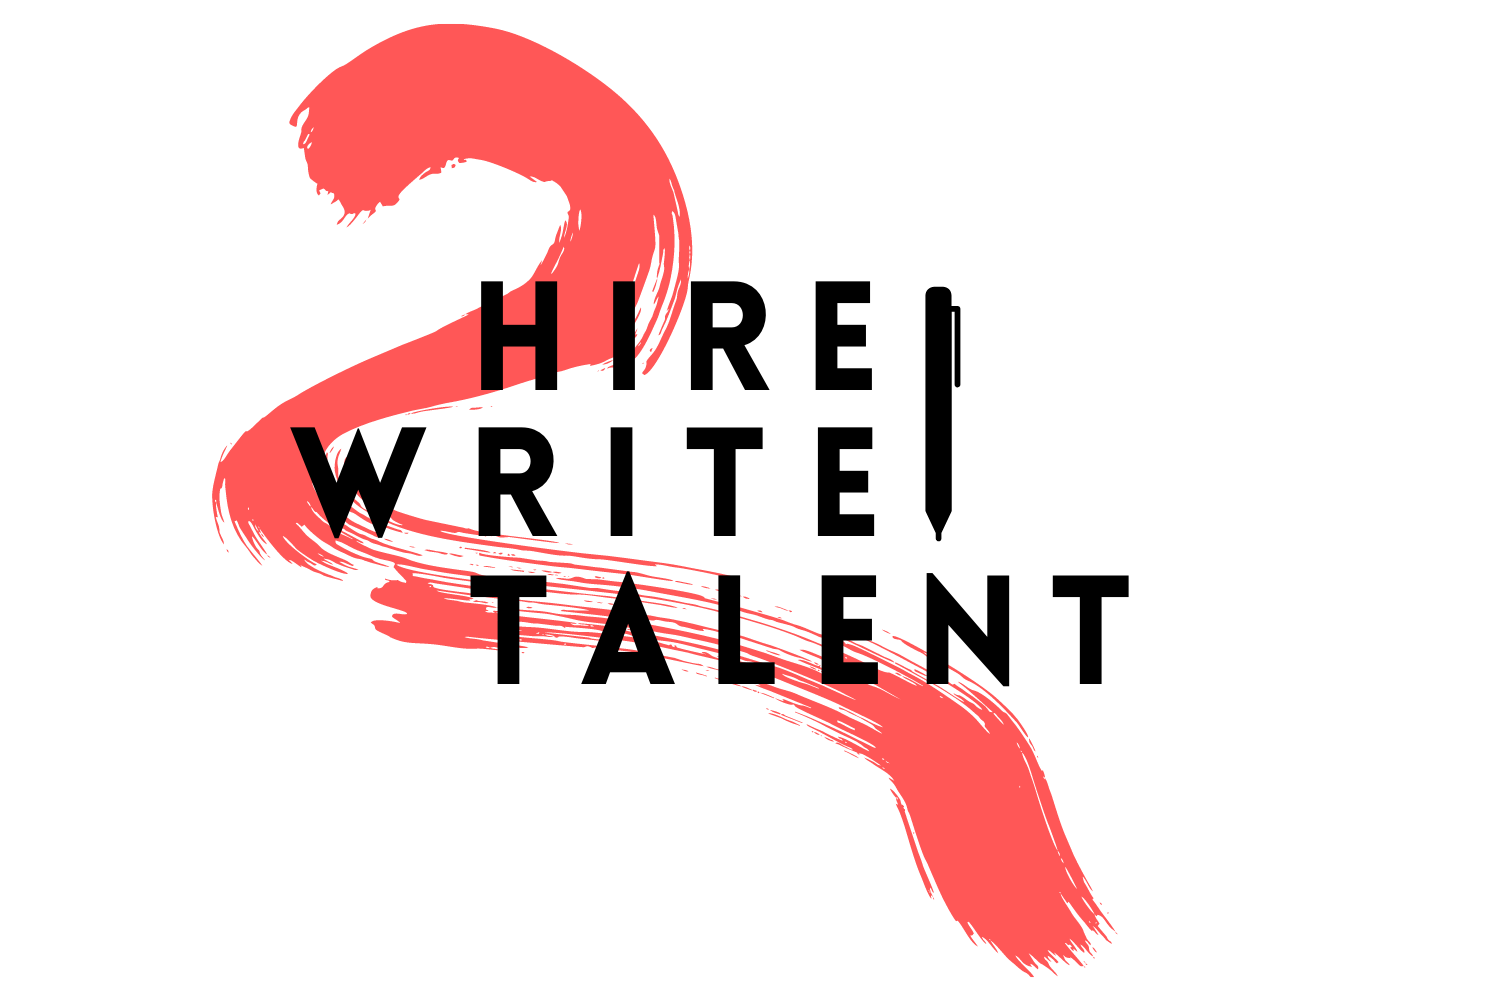 Hire Write Talent